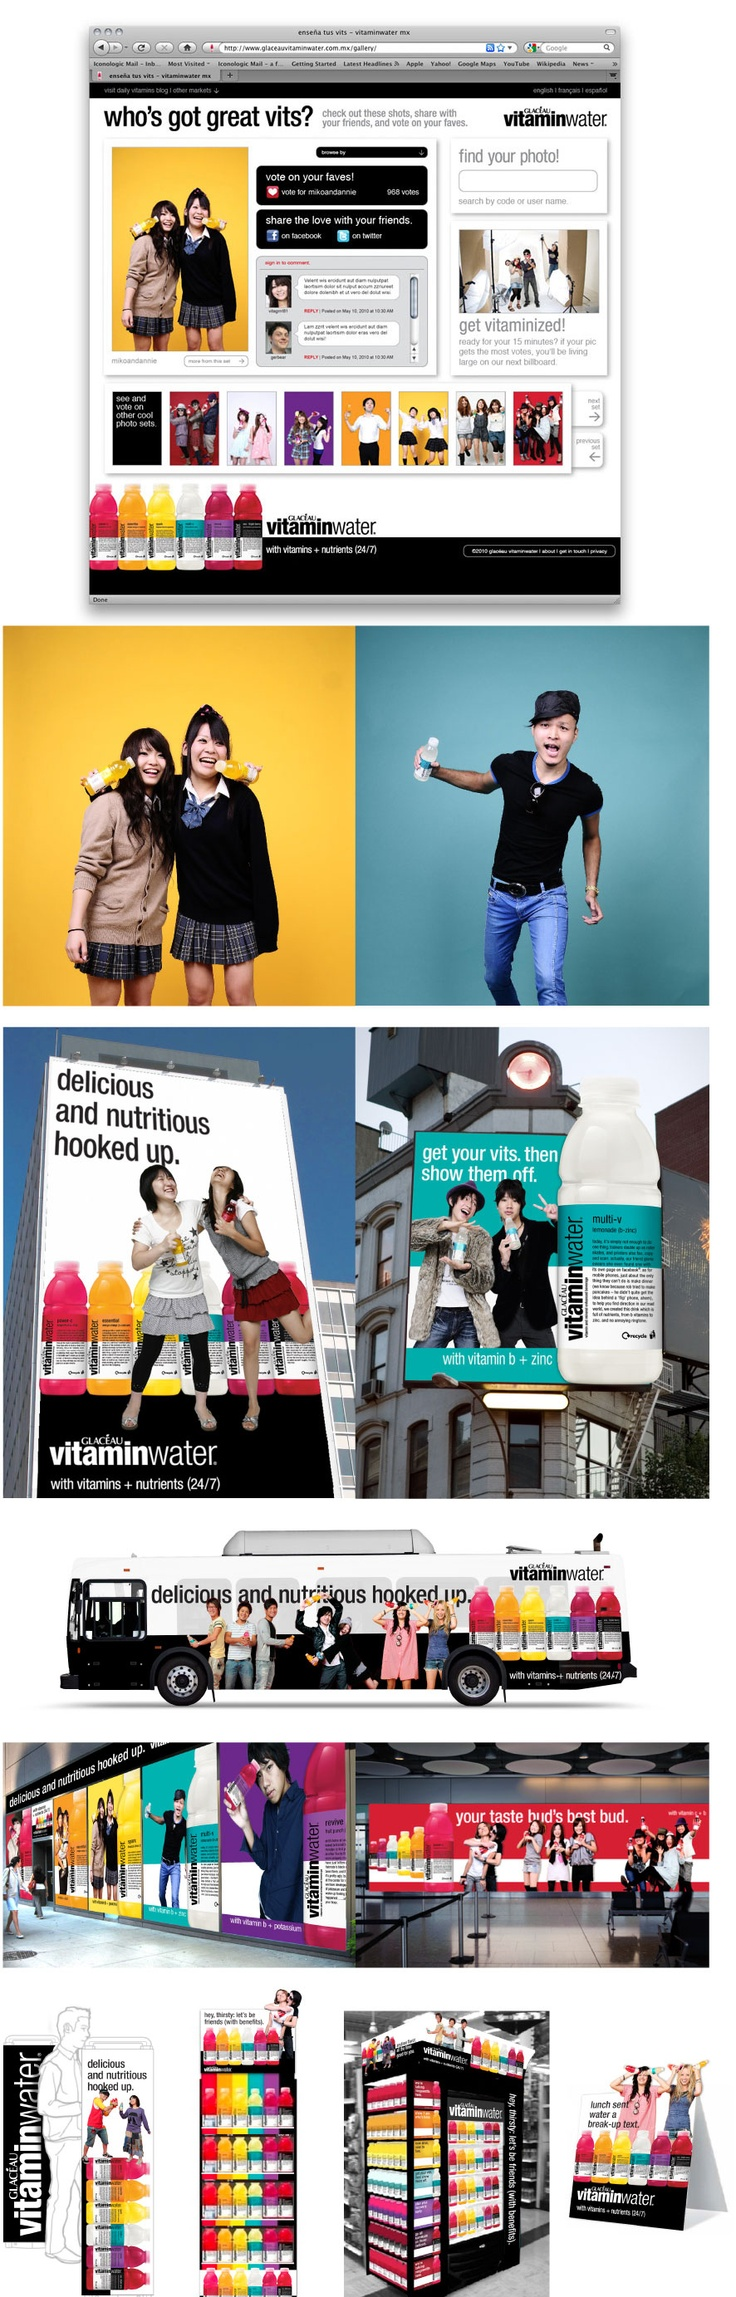 Iconologic developed the strategic and advertising guidelines for the Summer Campaign that introduces the benefits of each flavor with the happy, colorful, cheeky style of real vitaminwater drinkers. Pop-up shops in urban hipster neighborhoods became impromptu photobooths, and those images graced giant billboards in Paris, Joburg, Capetown, and Lisbon. We carried on in stores and cafes to connect what drinkers see on the streets to what they experience at the shelf.